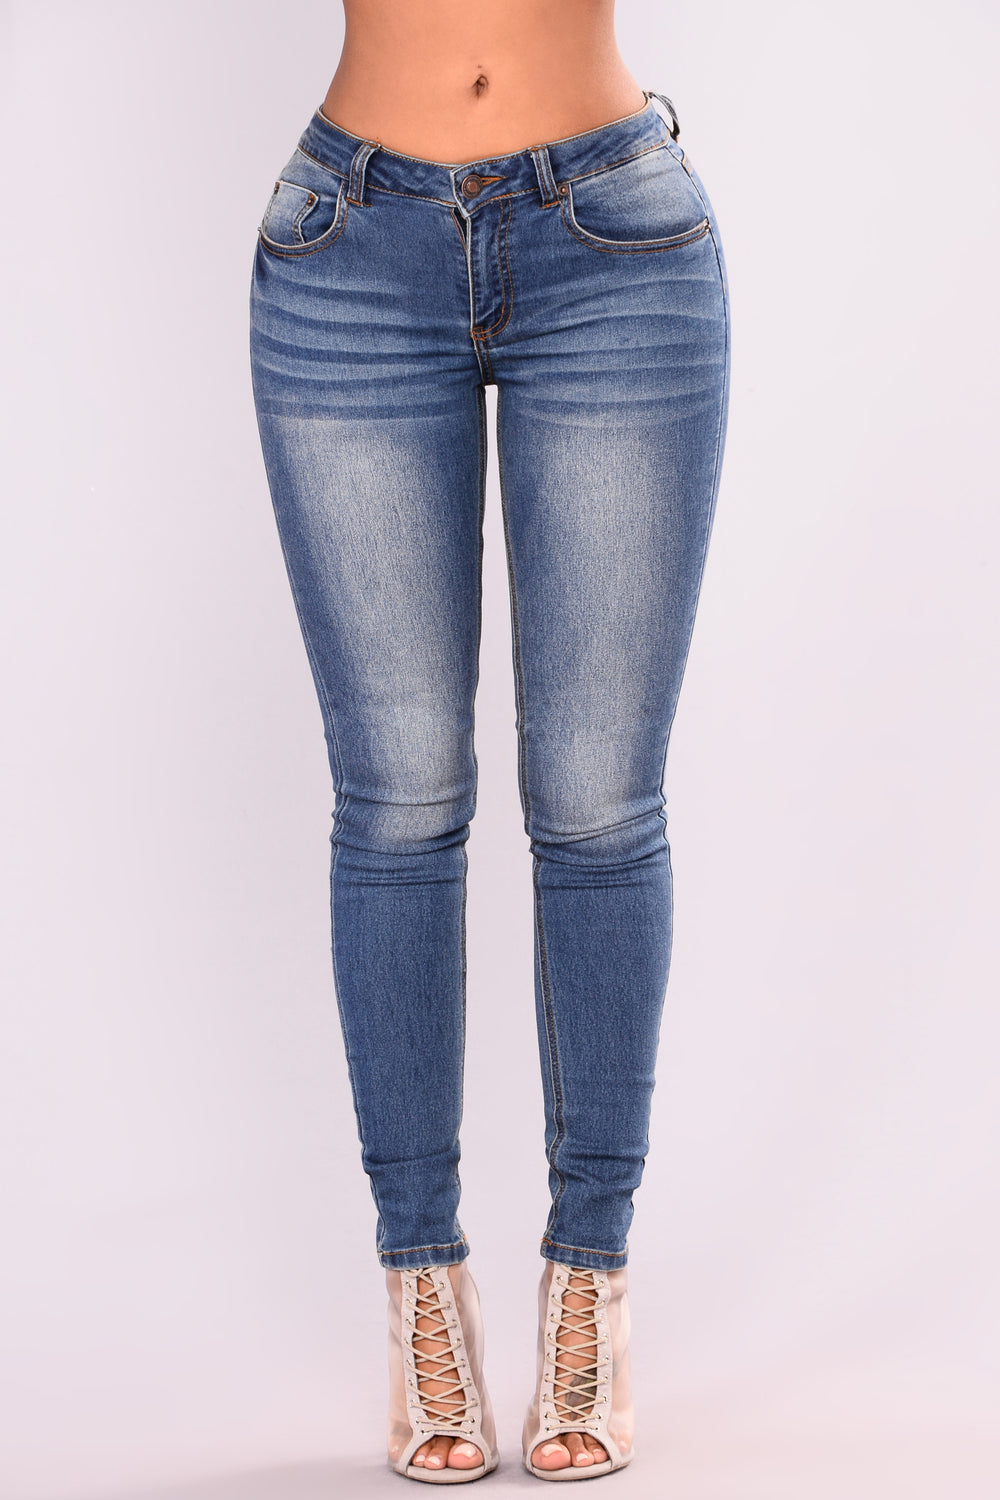 Good Idea Skinny Jeans - Medium Blue Wash